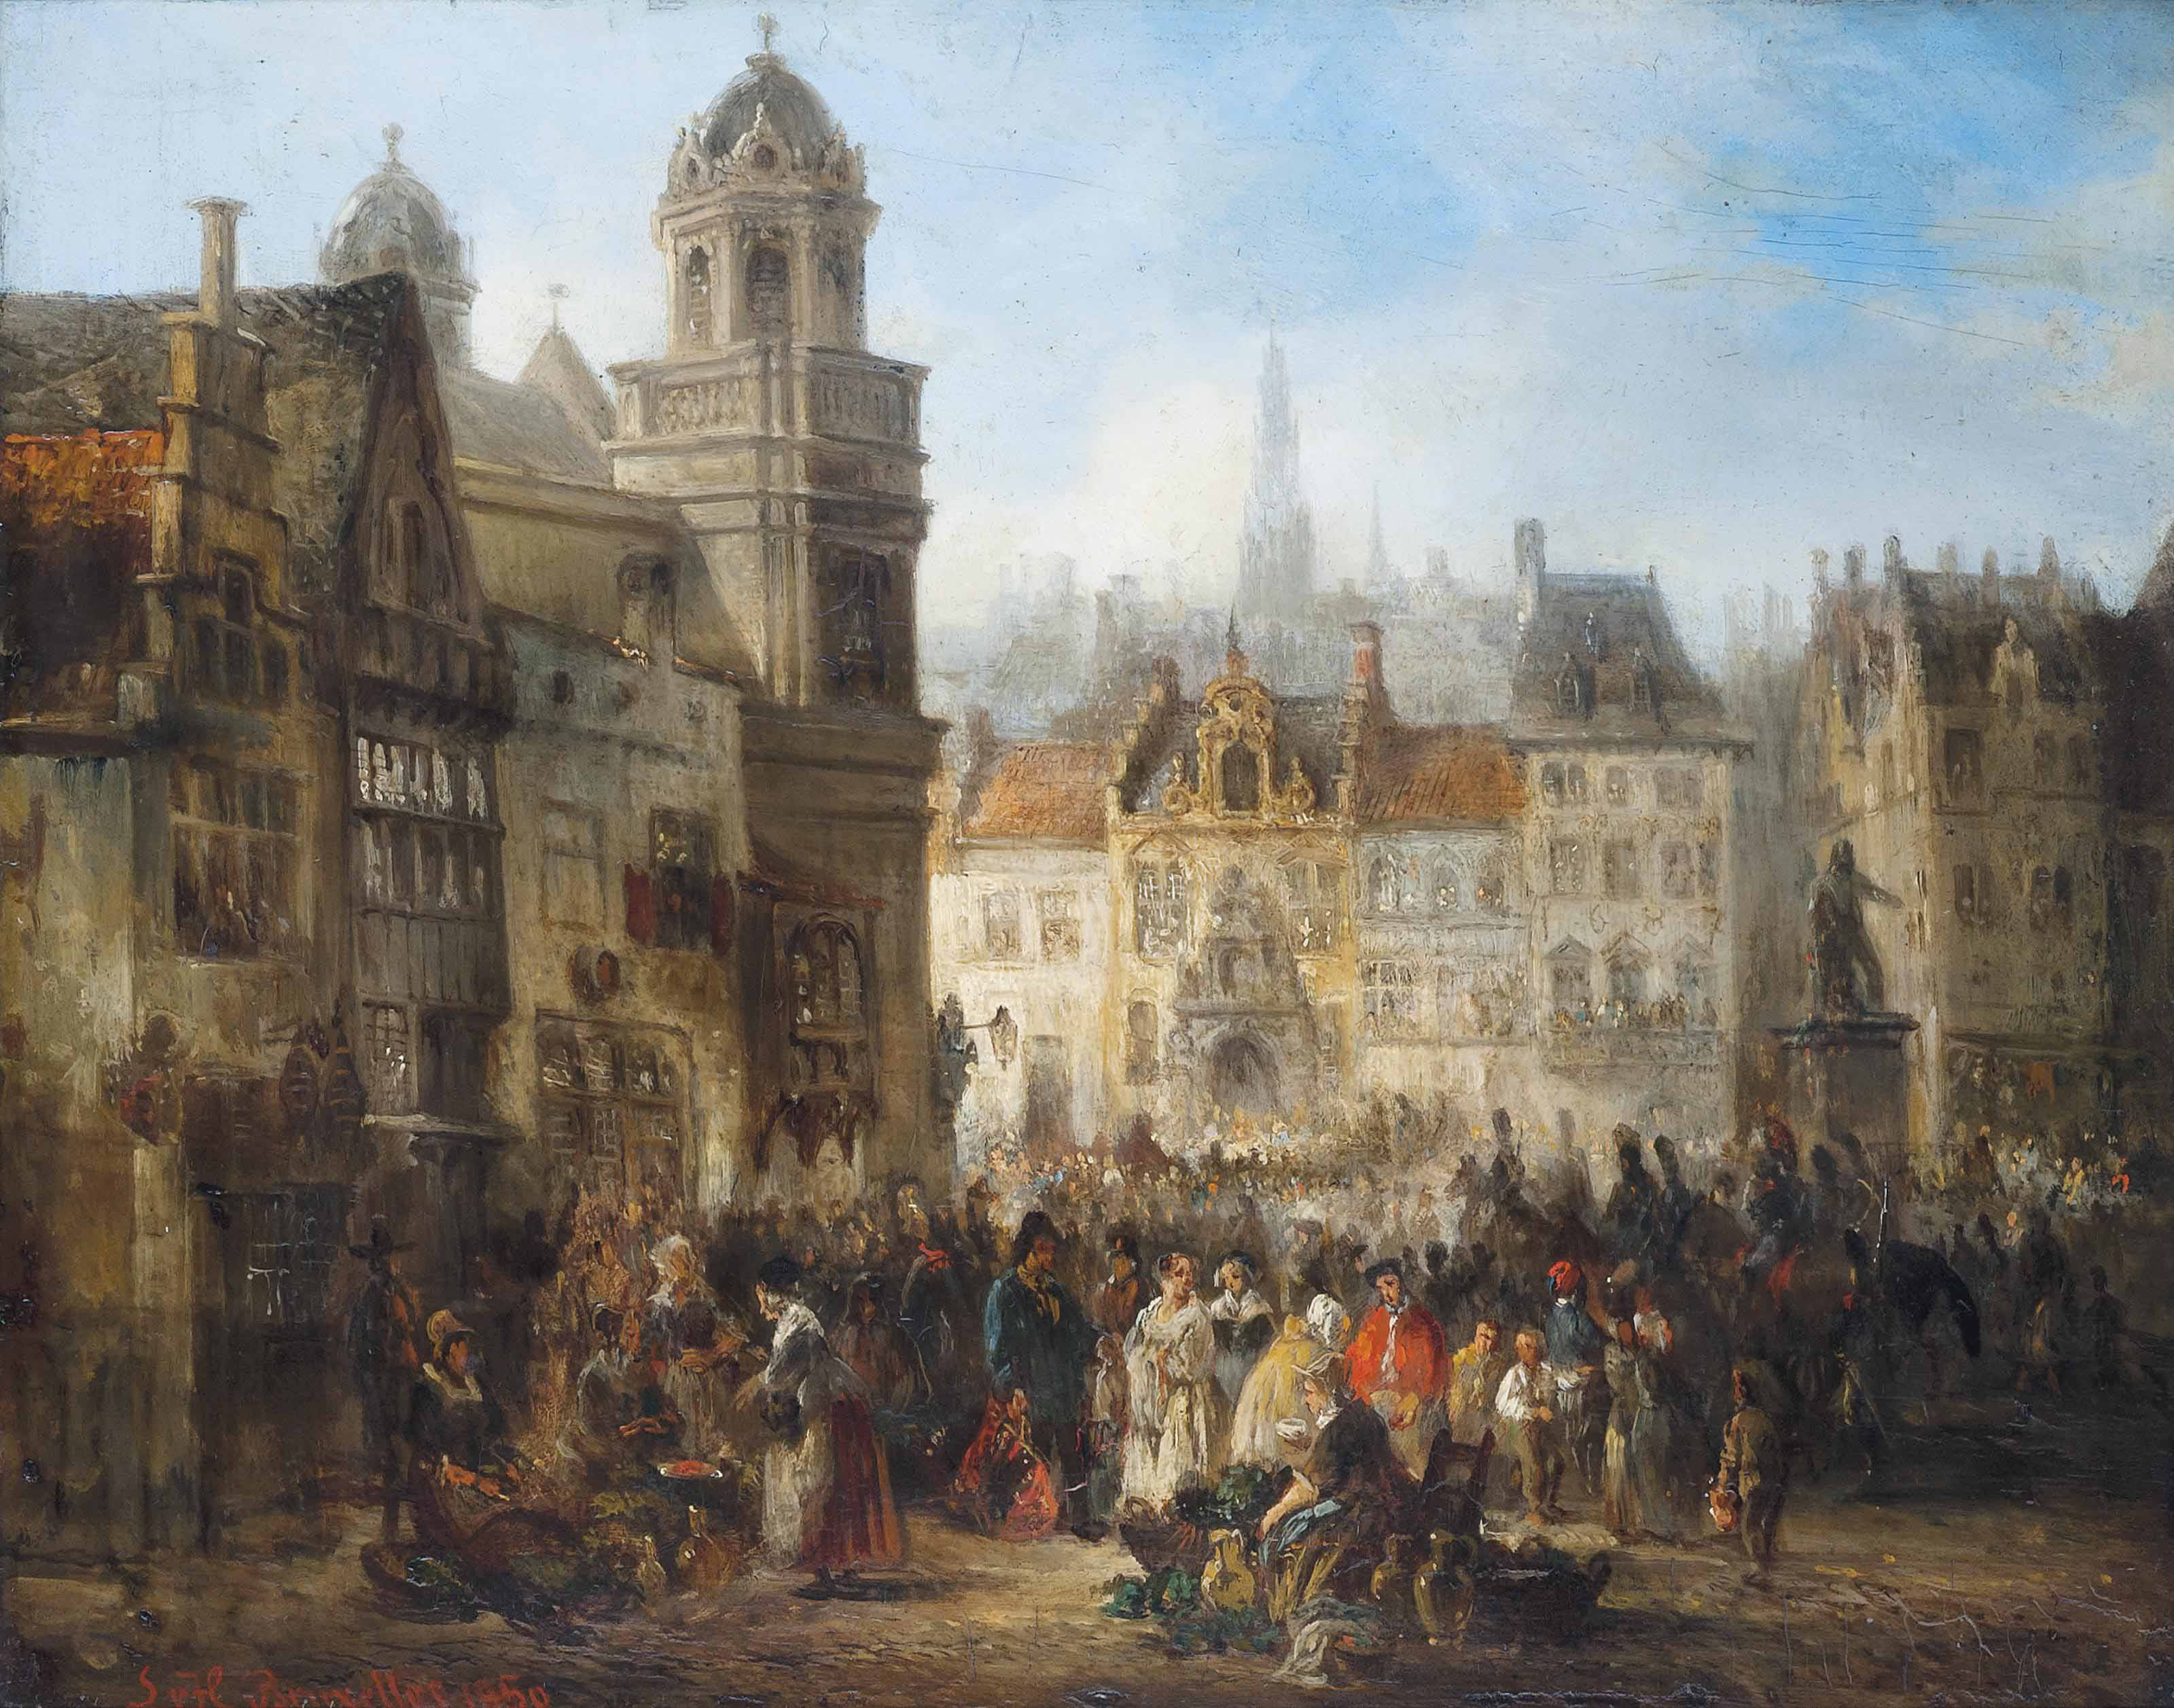 Market day in a Brussels square